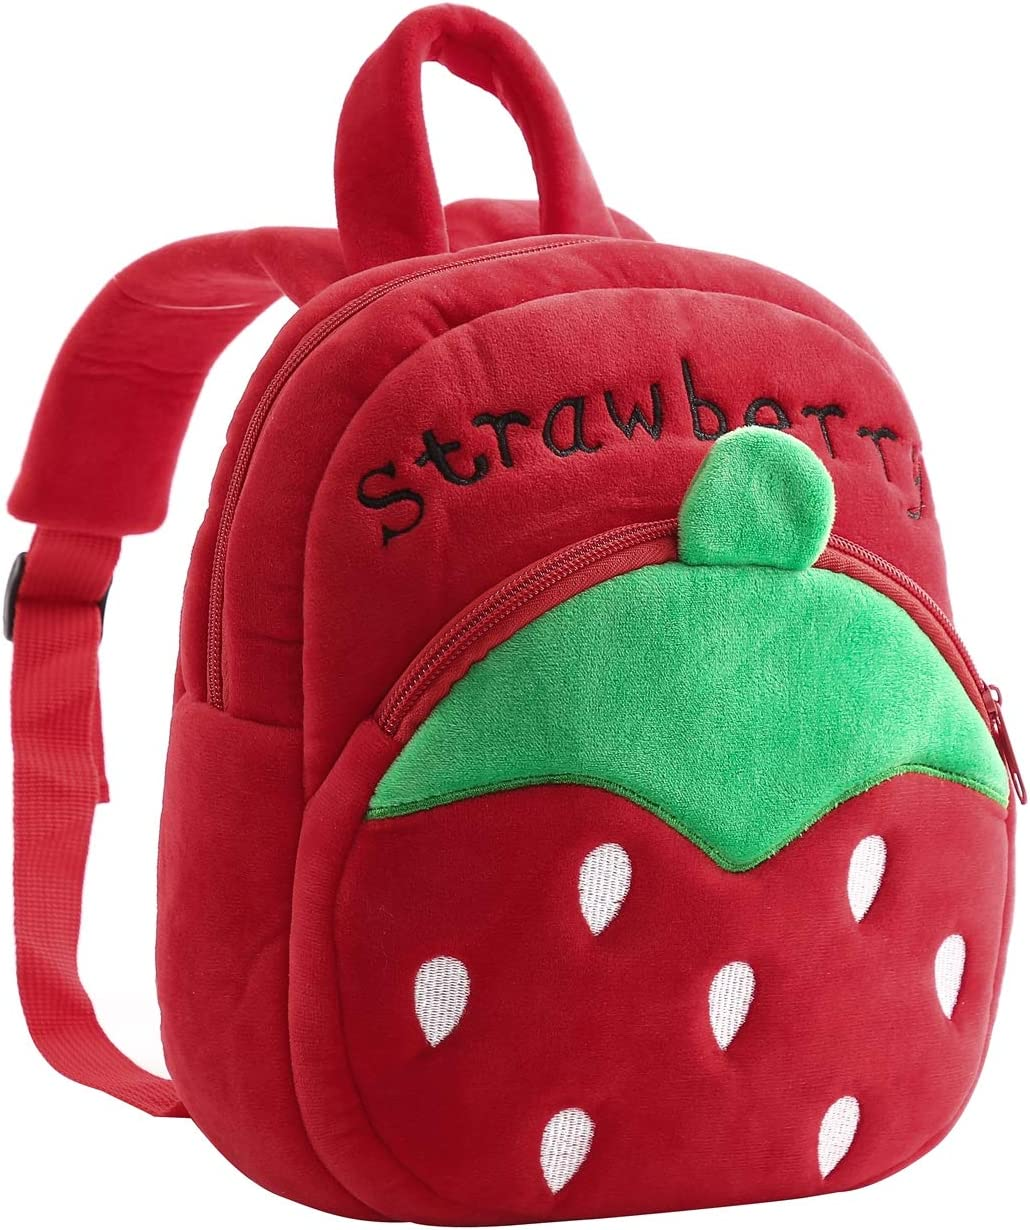 Abhay Girls Strawberry Backpack Fashion,Shool Women Strawberry Bag Travel,Cute Bookbag For Girls Party Supplies (strawberry)